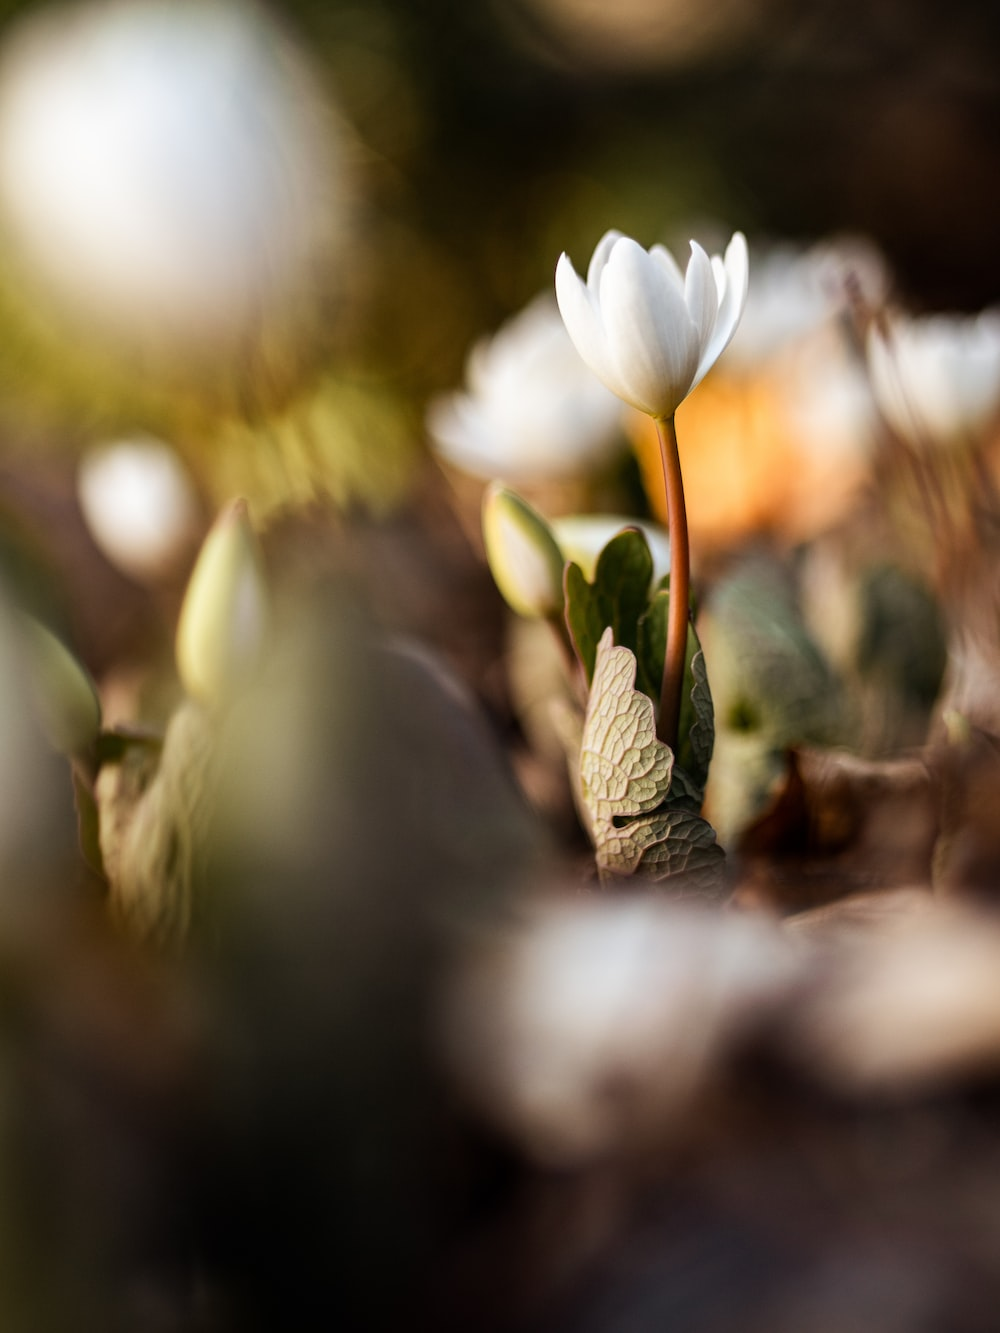 closeup photography of white-petaled flower